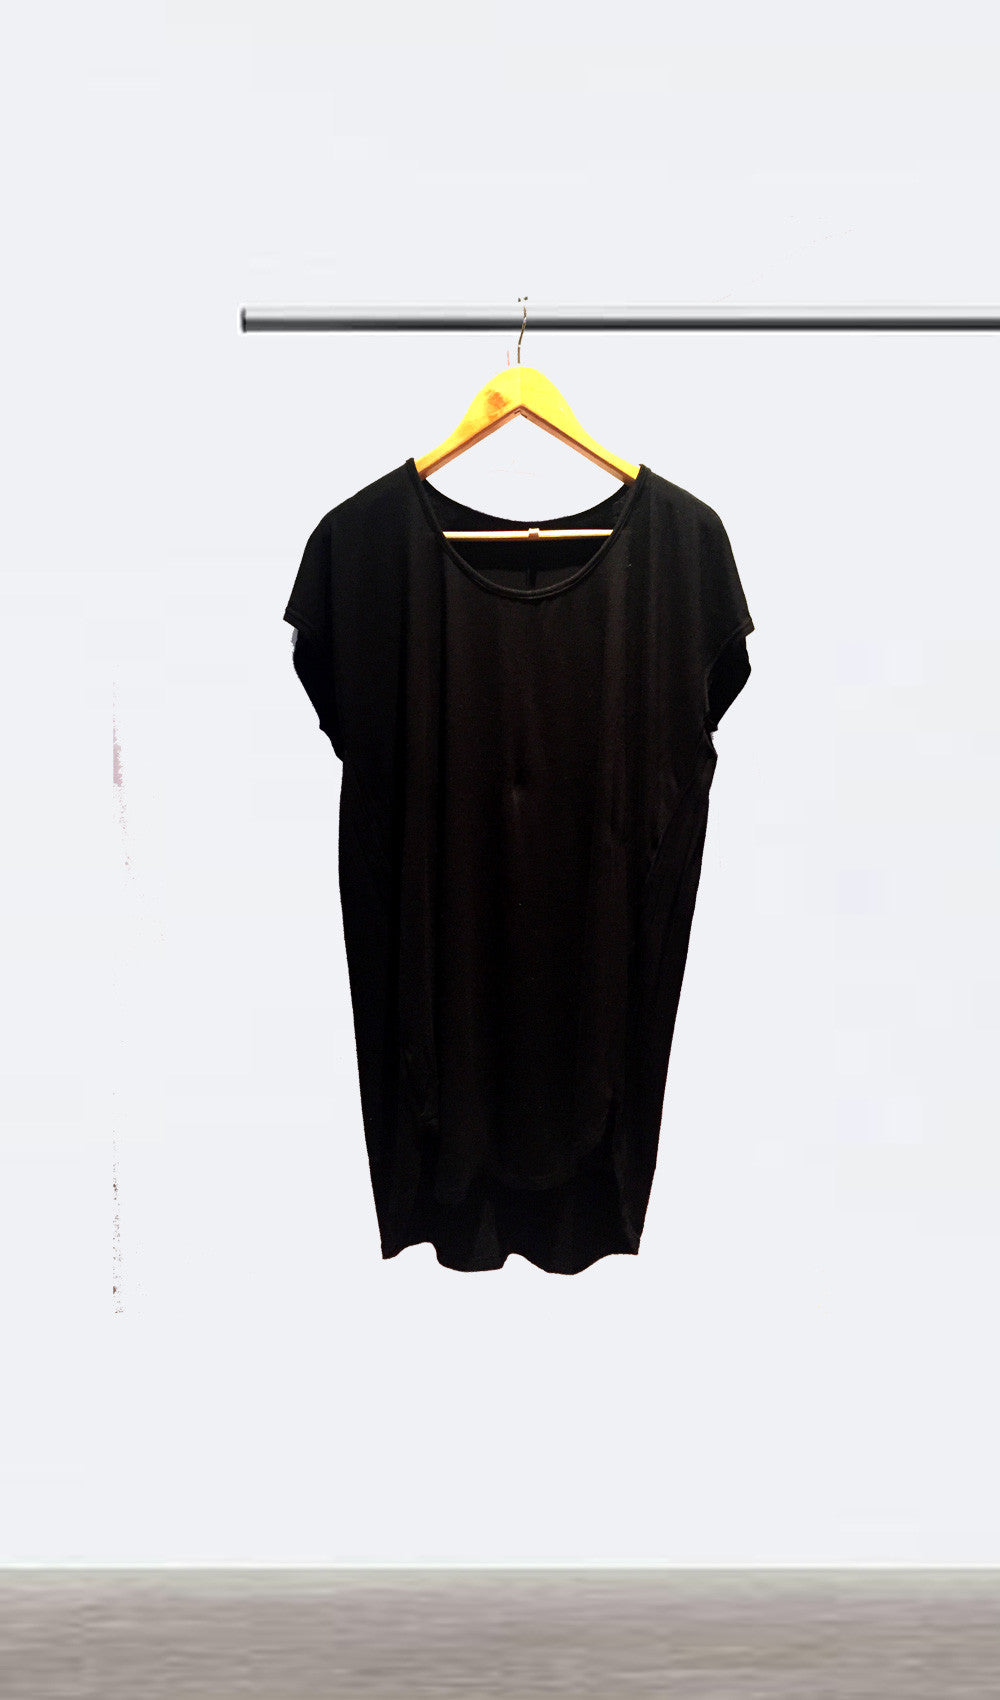 b6844c51f28c The Black Oversized Tee Dress – Ellipsis